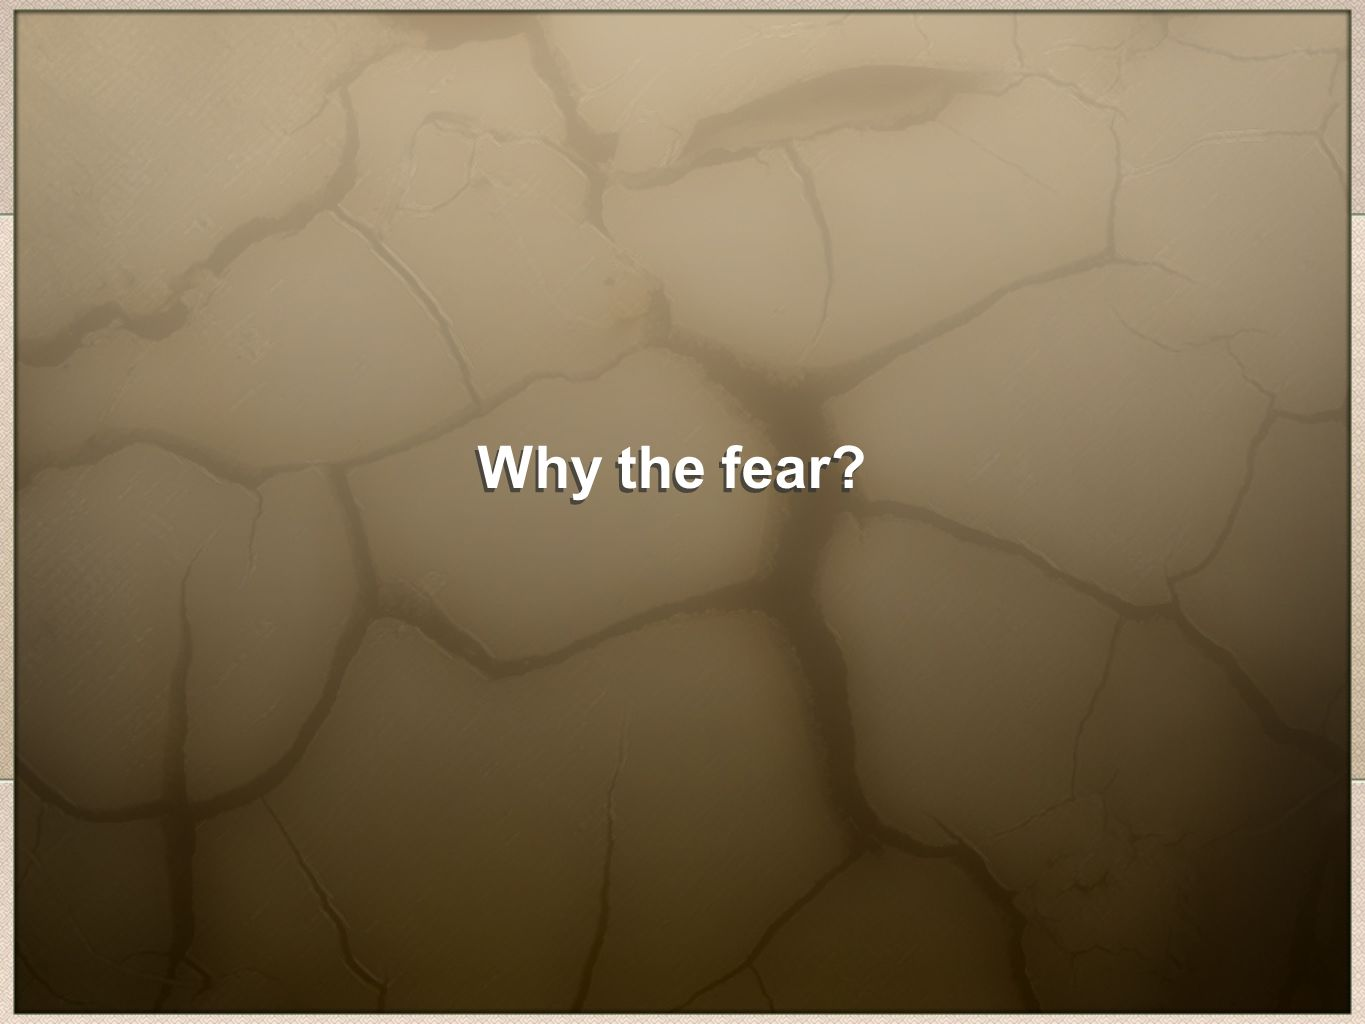 Why the fear